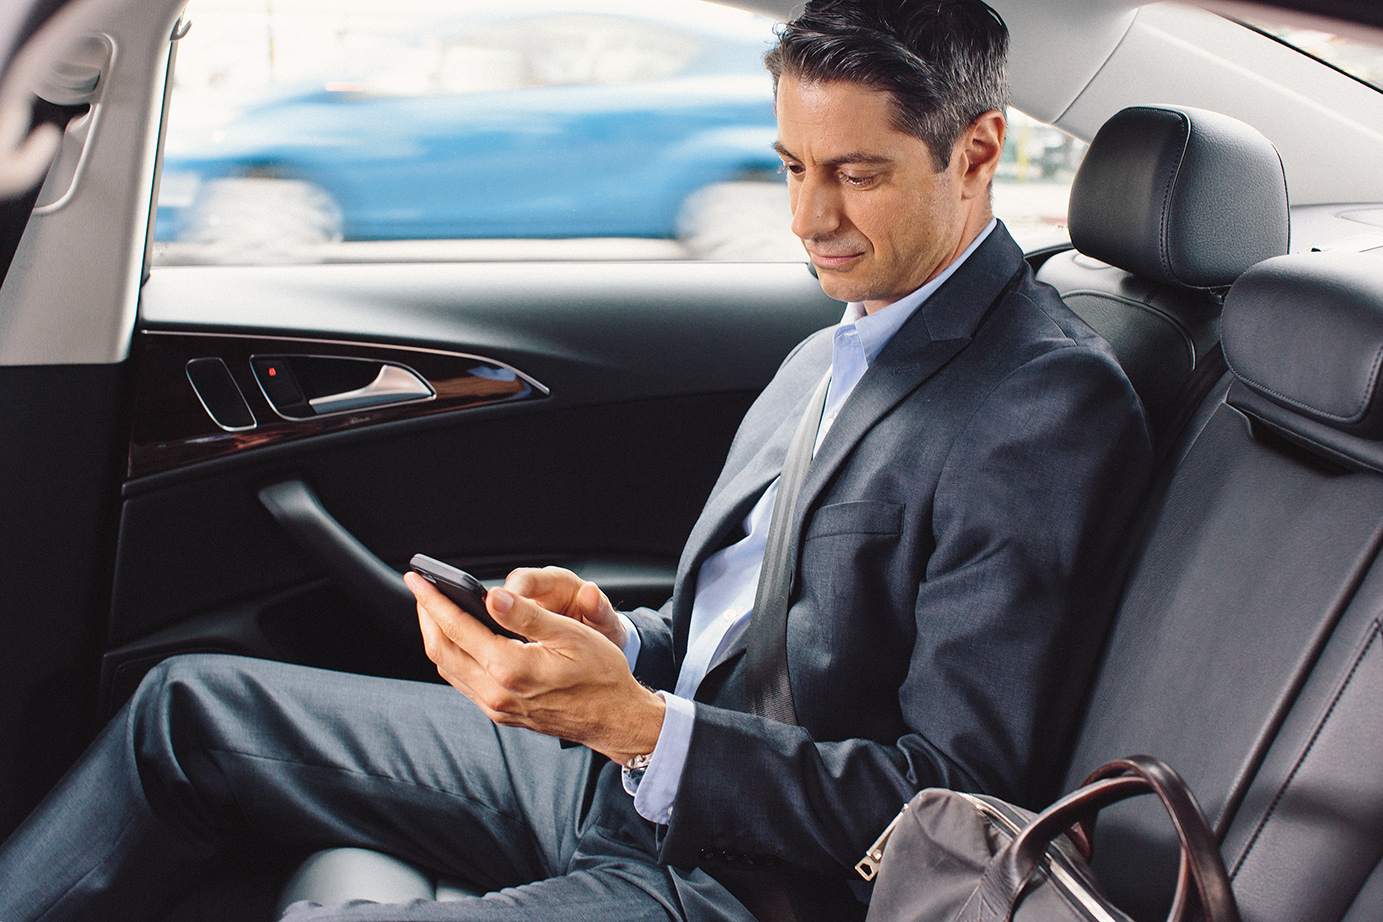 Uber Car Seat >> Uber usage by business travelers surpassed taxi and car ...